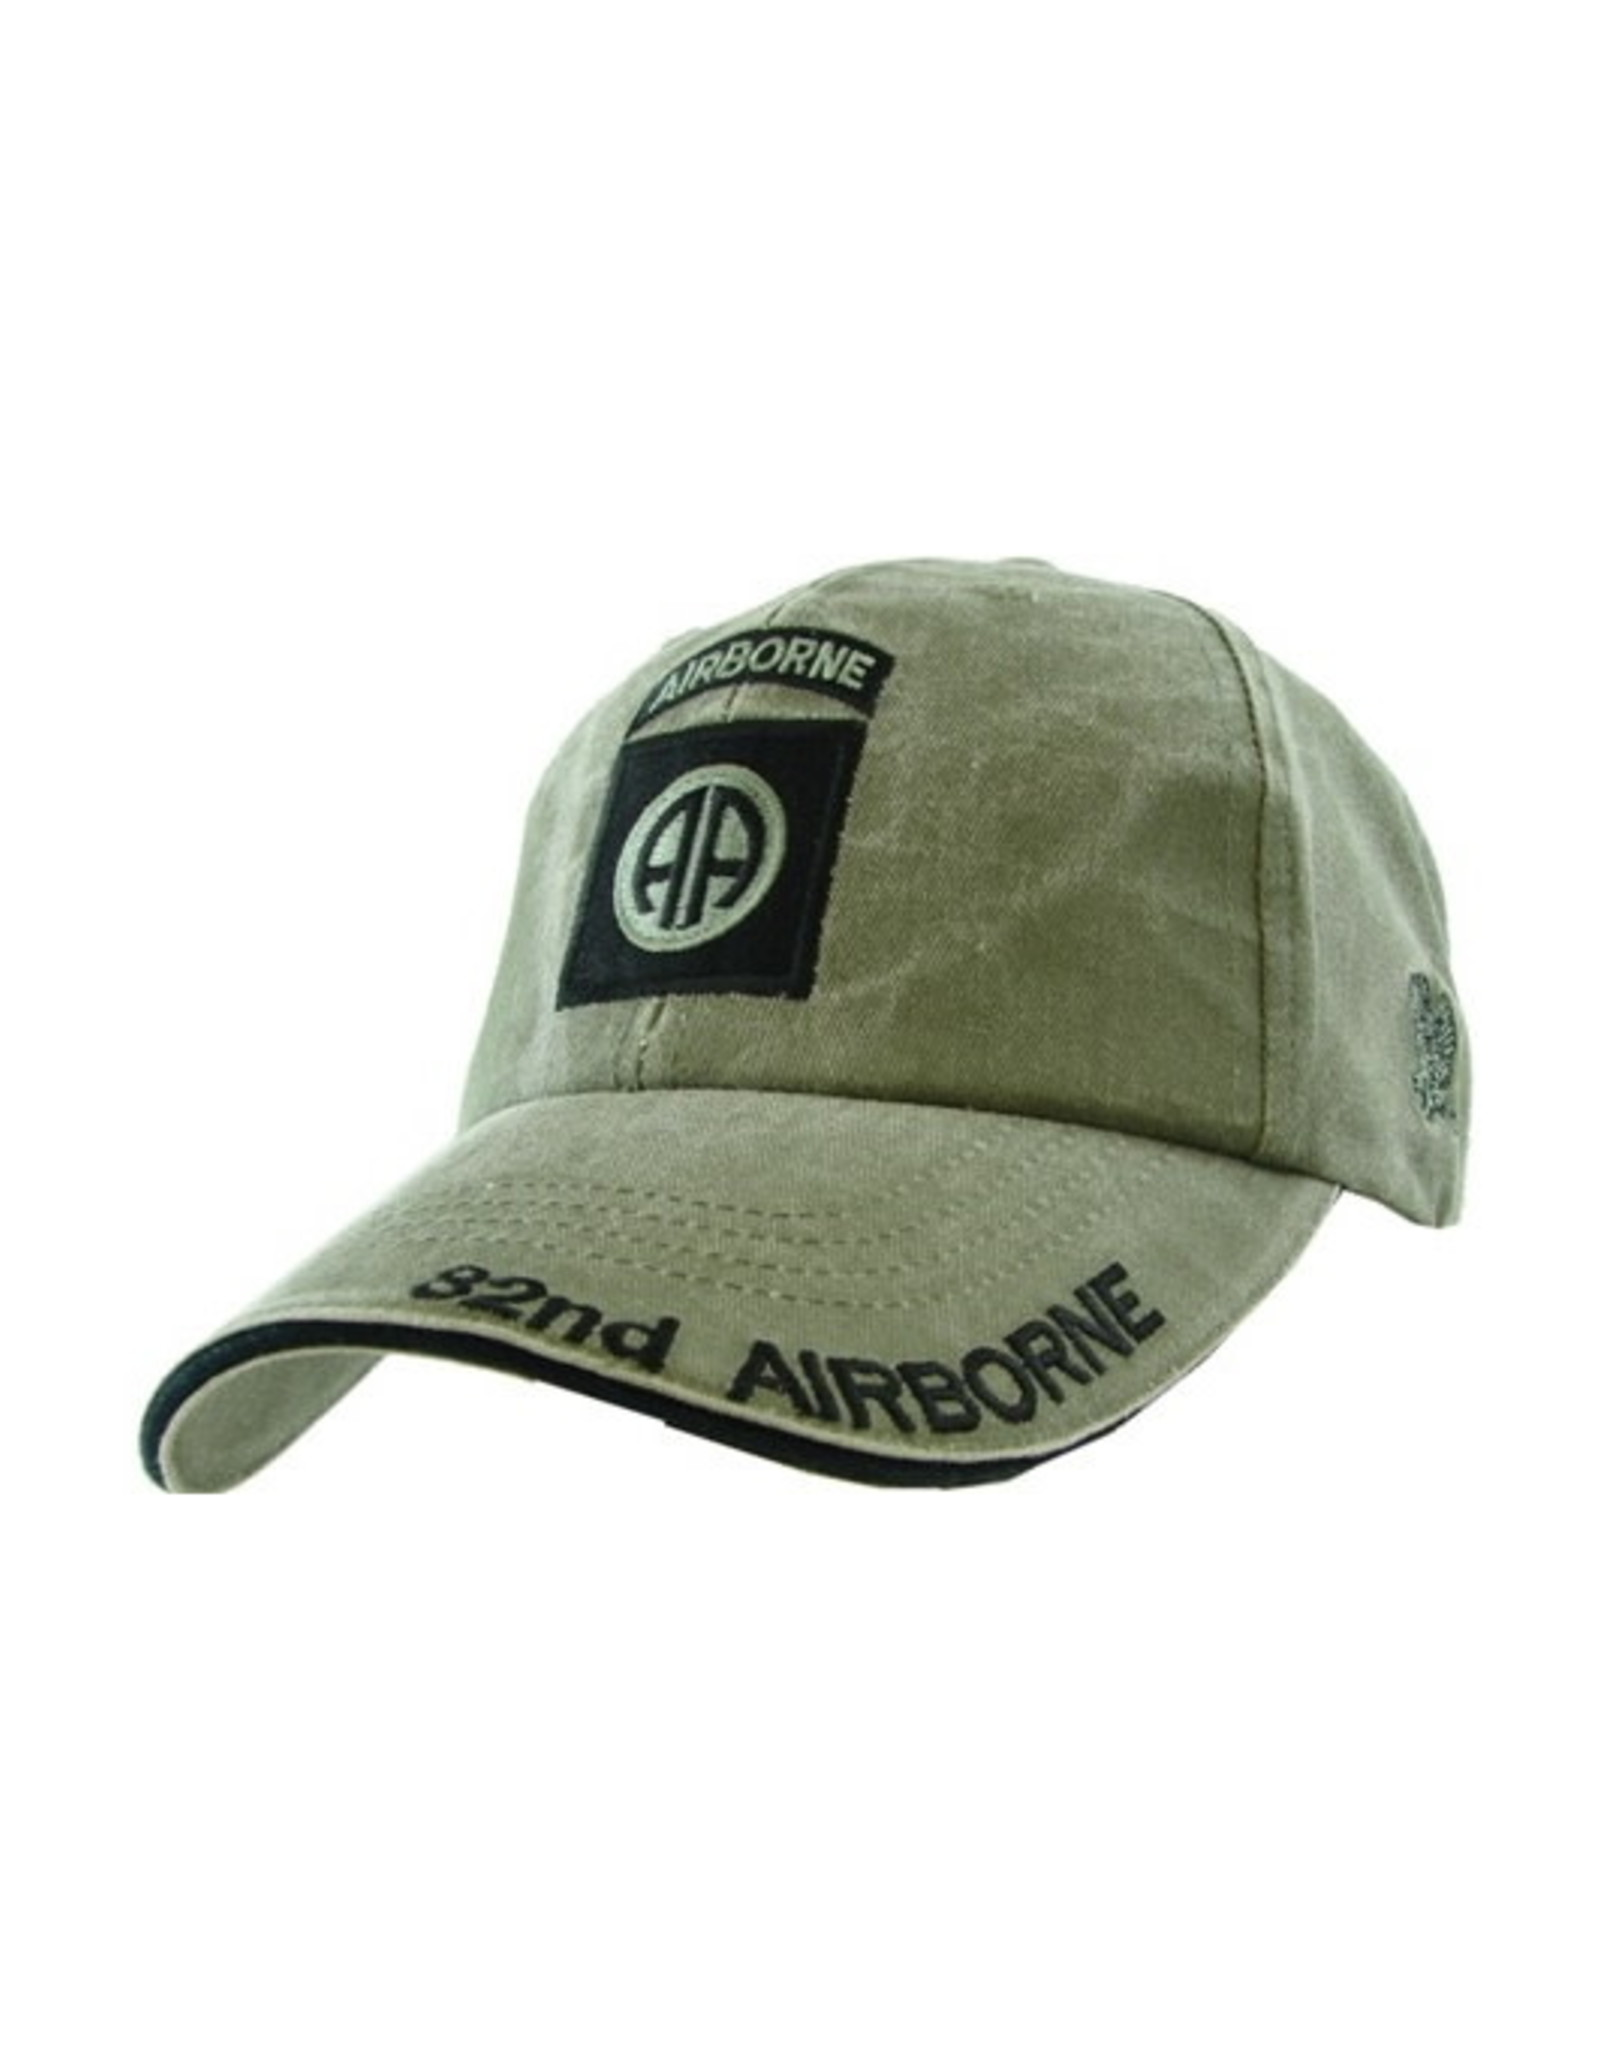 MidMil Army 82nd Airborne Division Hat with Subdued Emblem Olive Drab